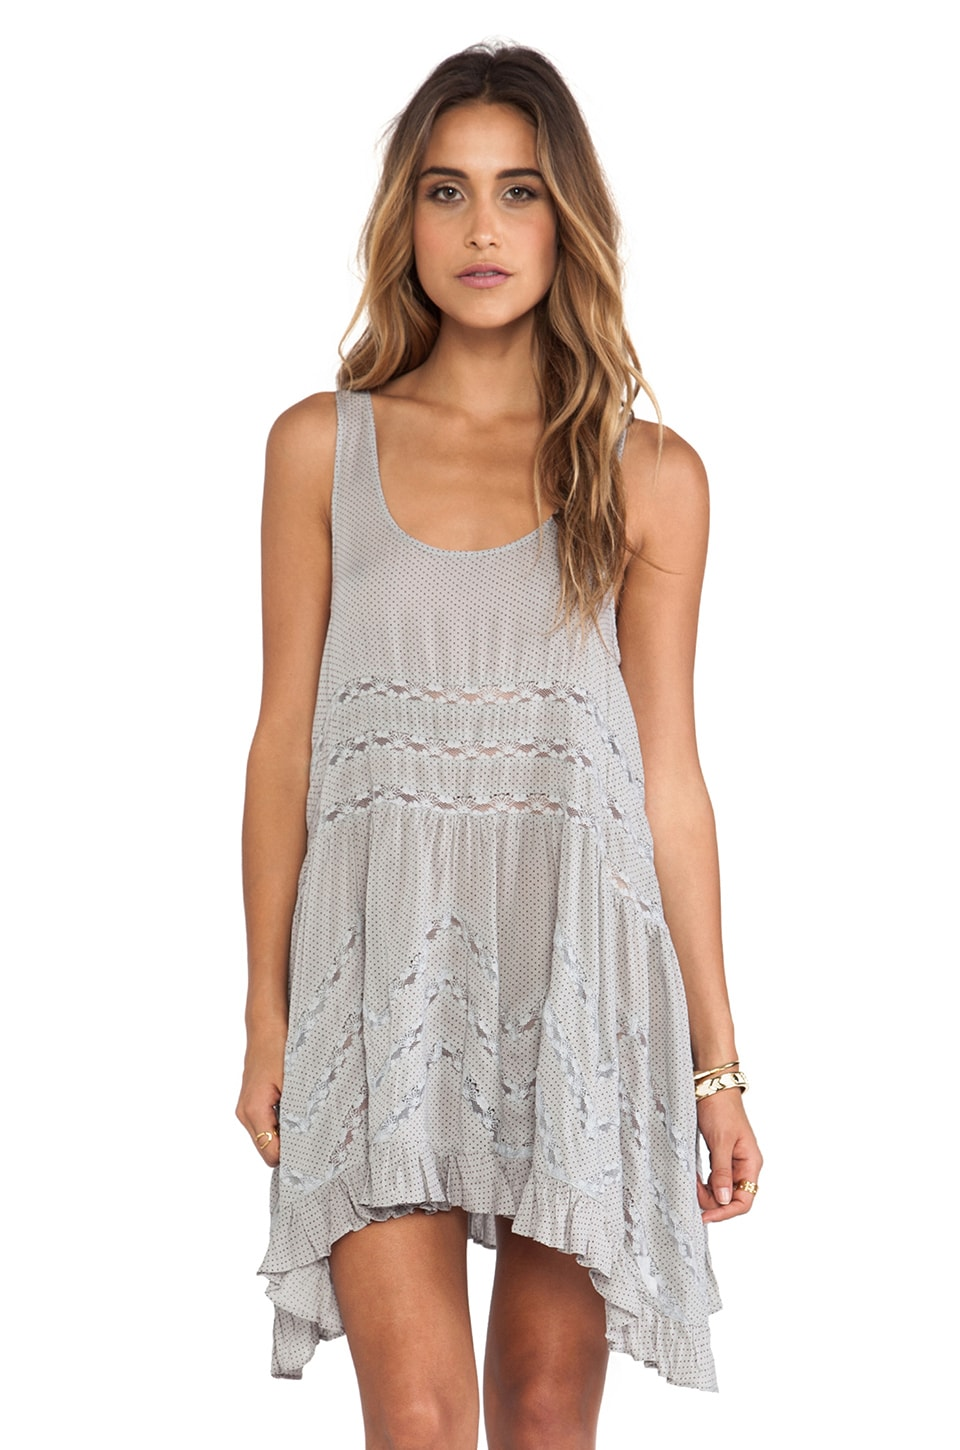 Free people white lace slip dress